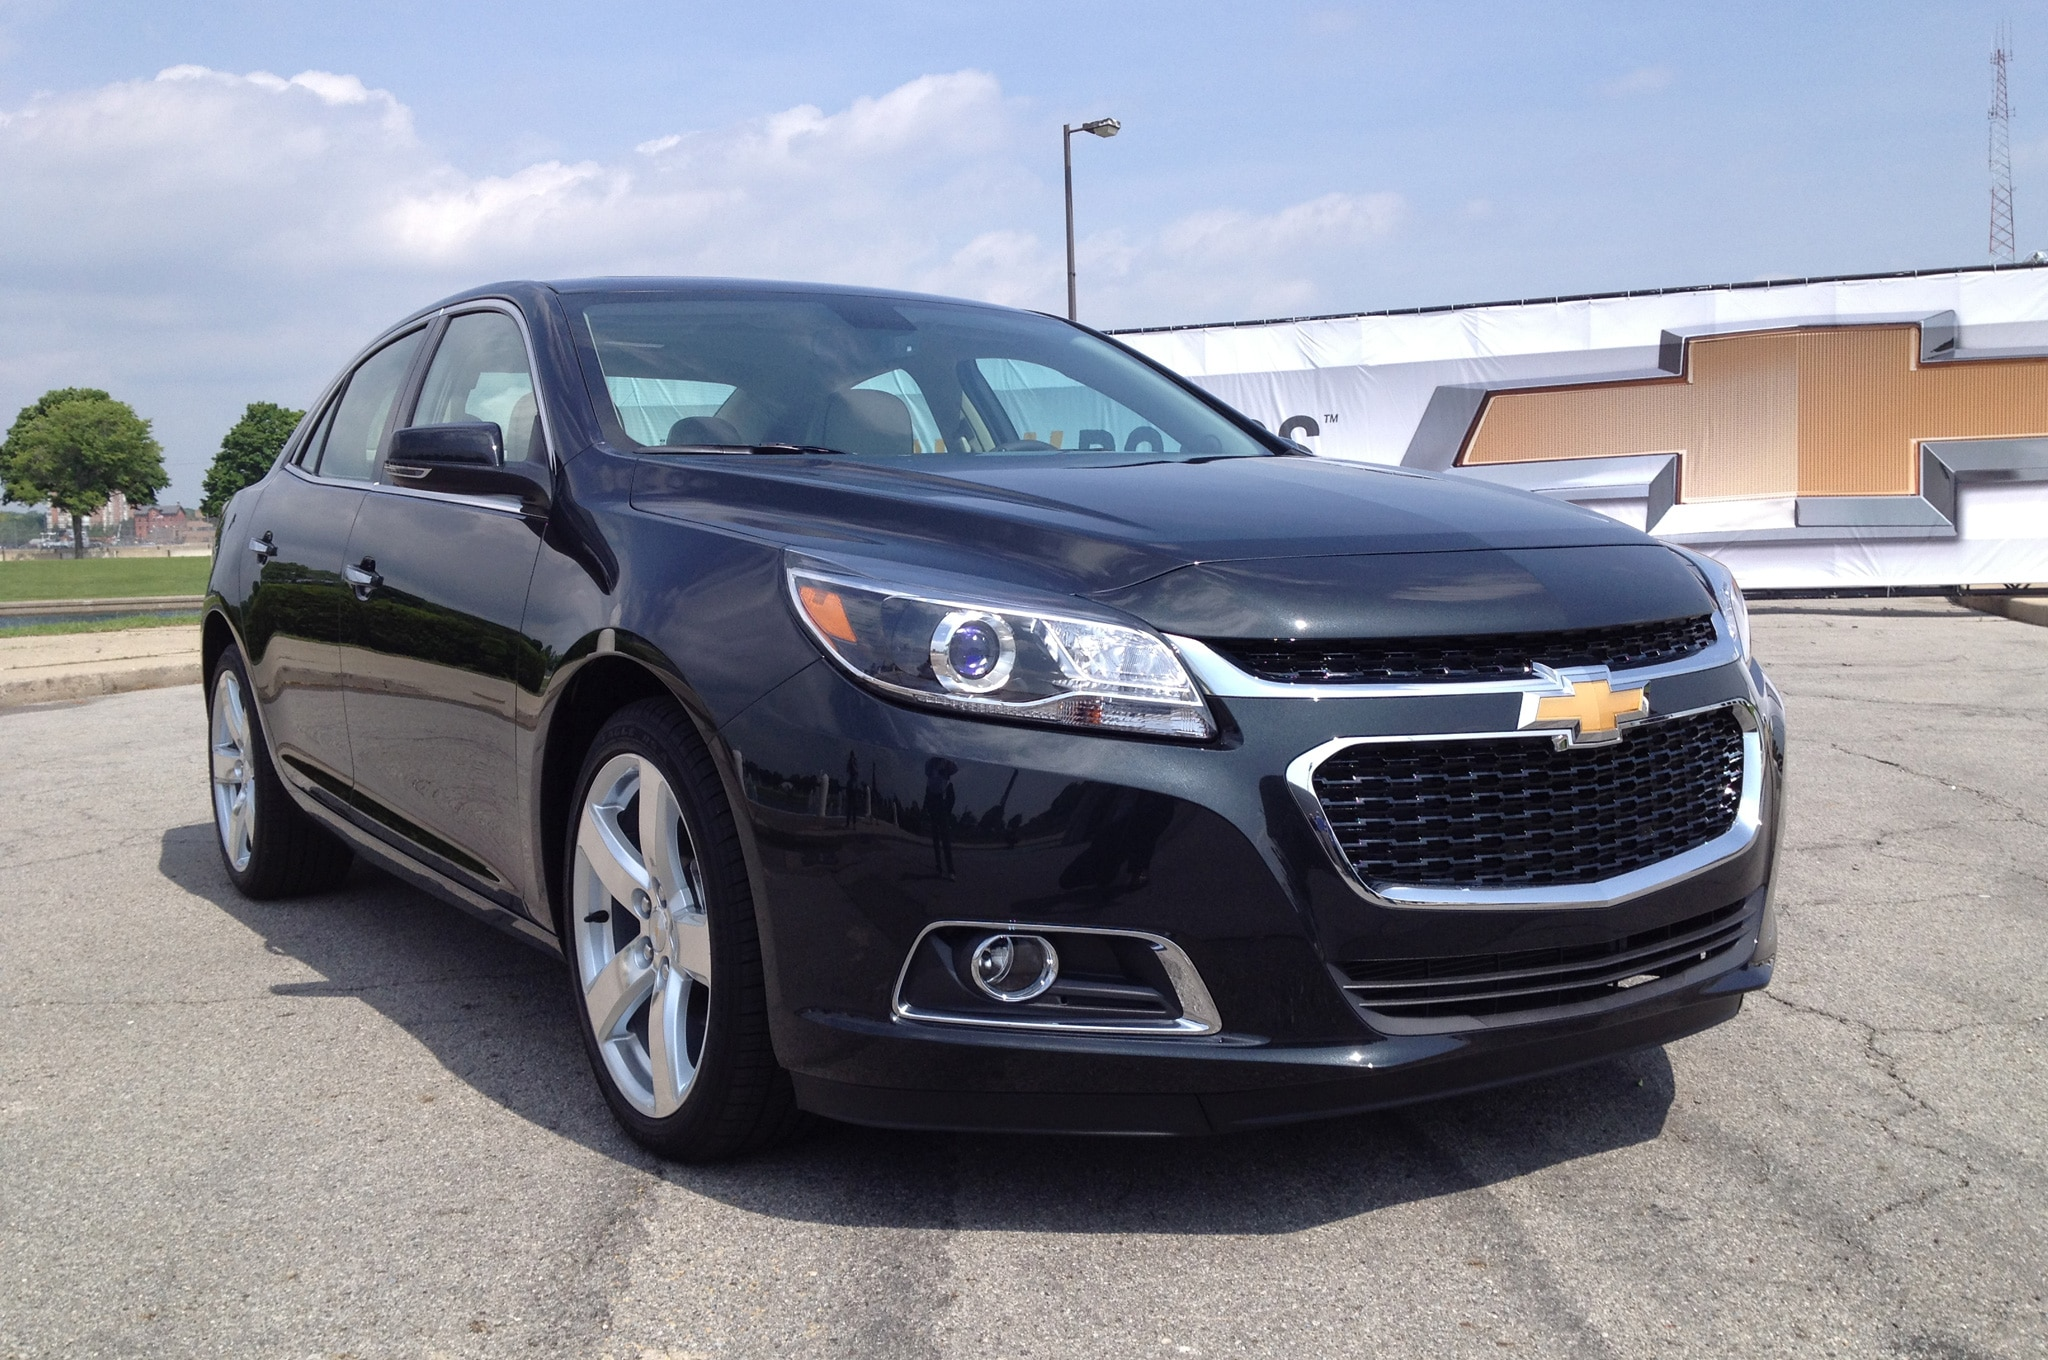 2014 Chevrolet Malibu Front Three Quarter 041